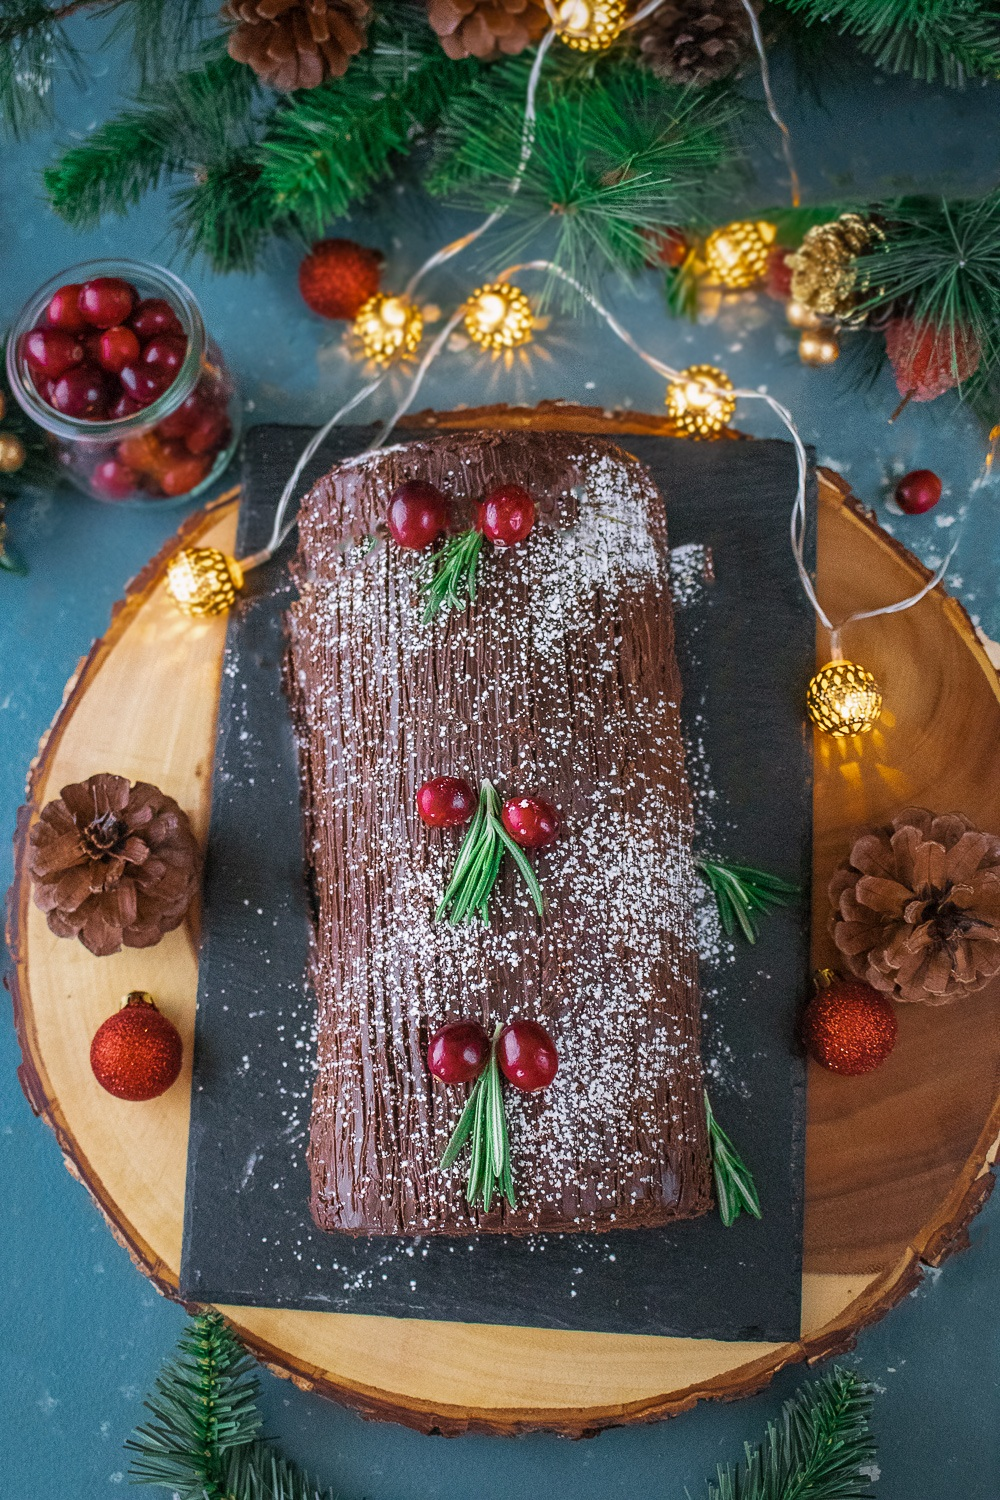 Decorated Yule Log Cake with Chocolate Ganache